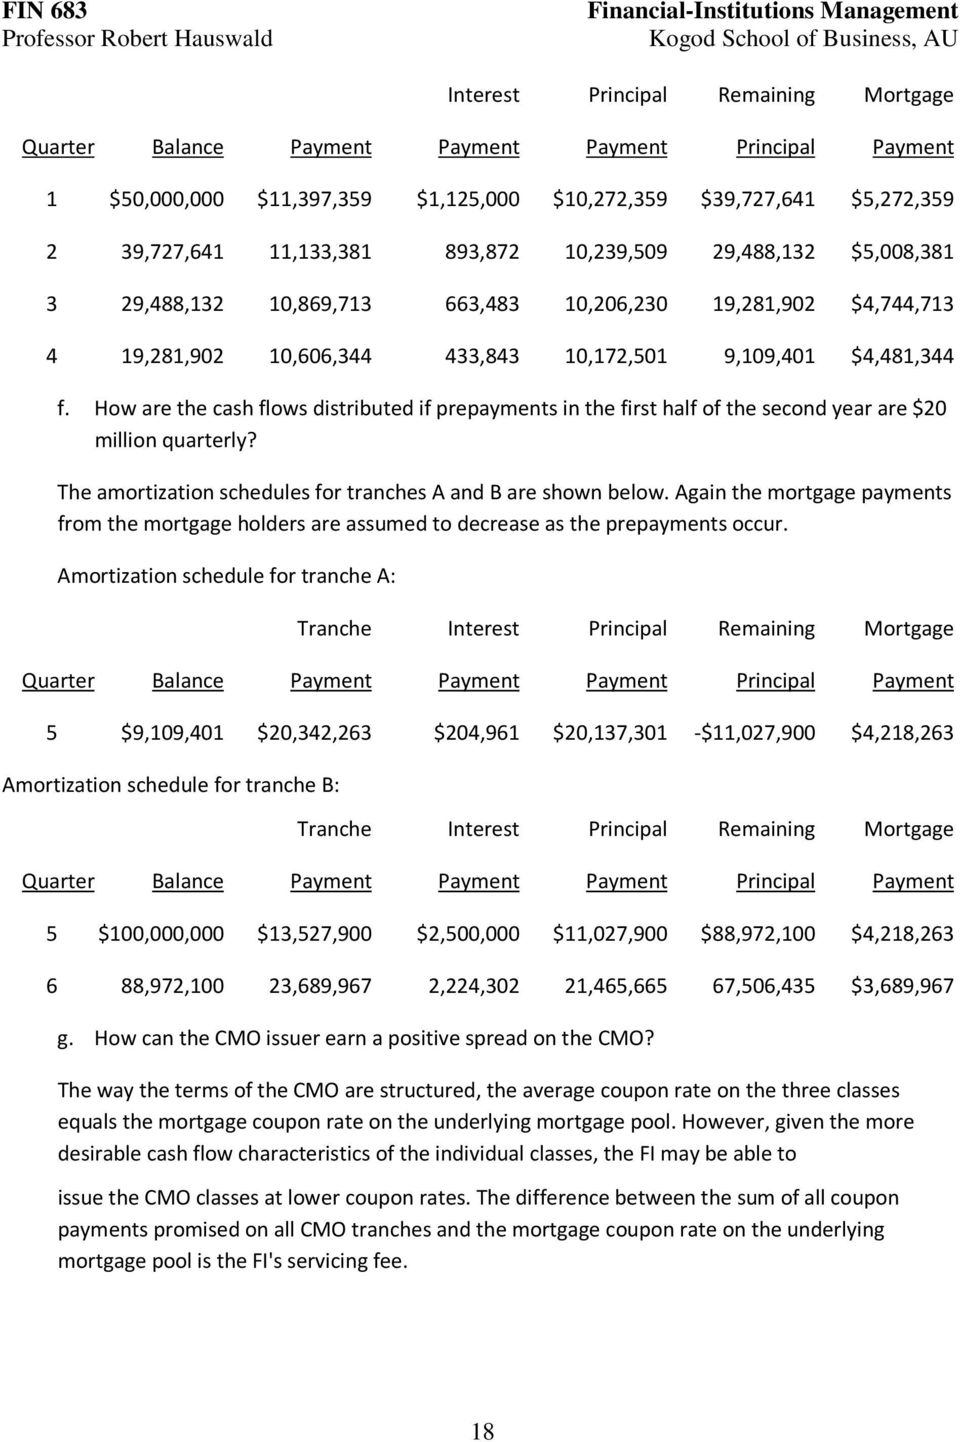 How are the cash flows distributed if prepayments in the first half of the second year are $20 million quarterly? The amortization schedules for tranches A and B are shown below.